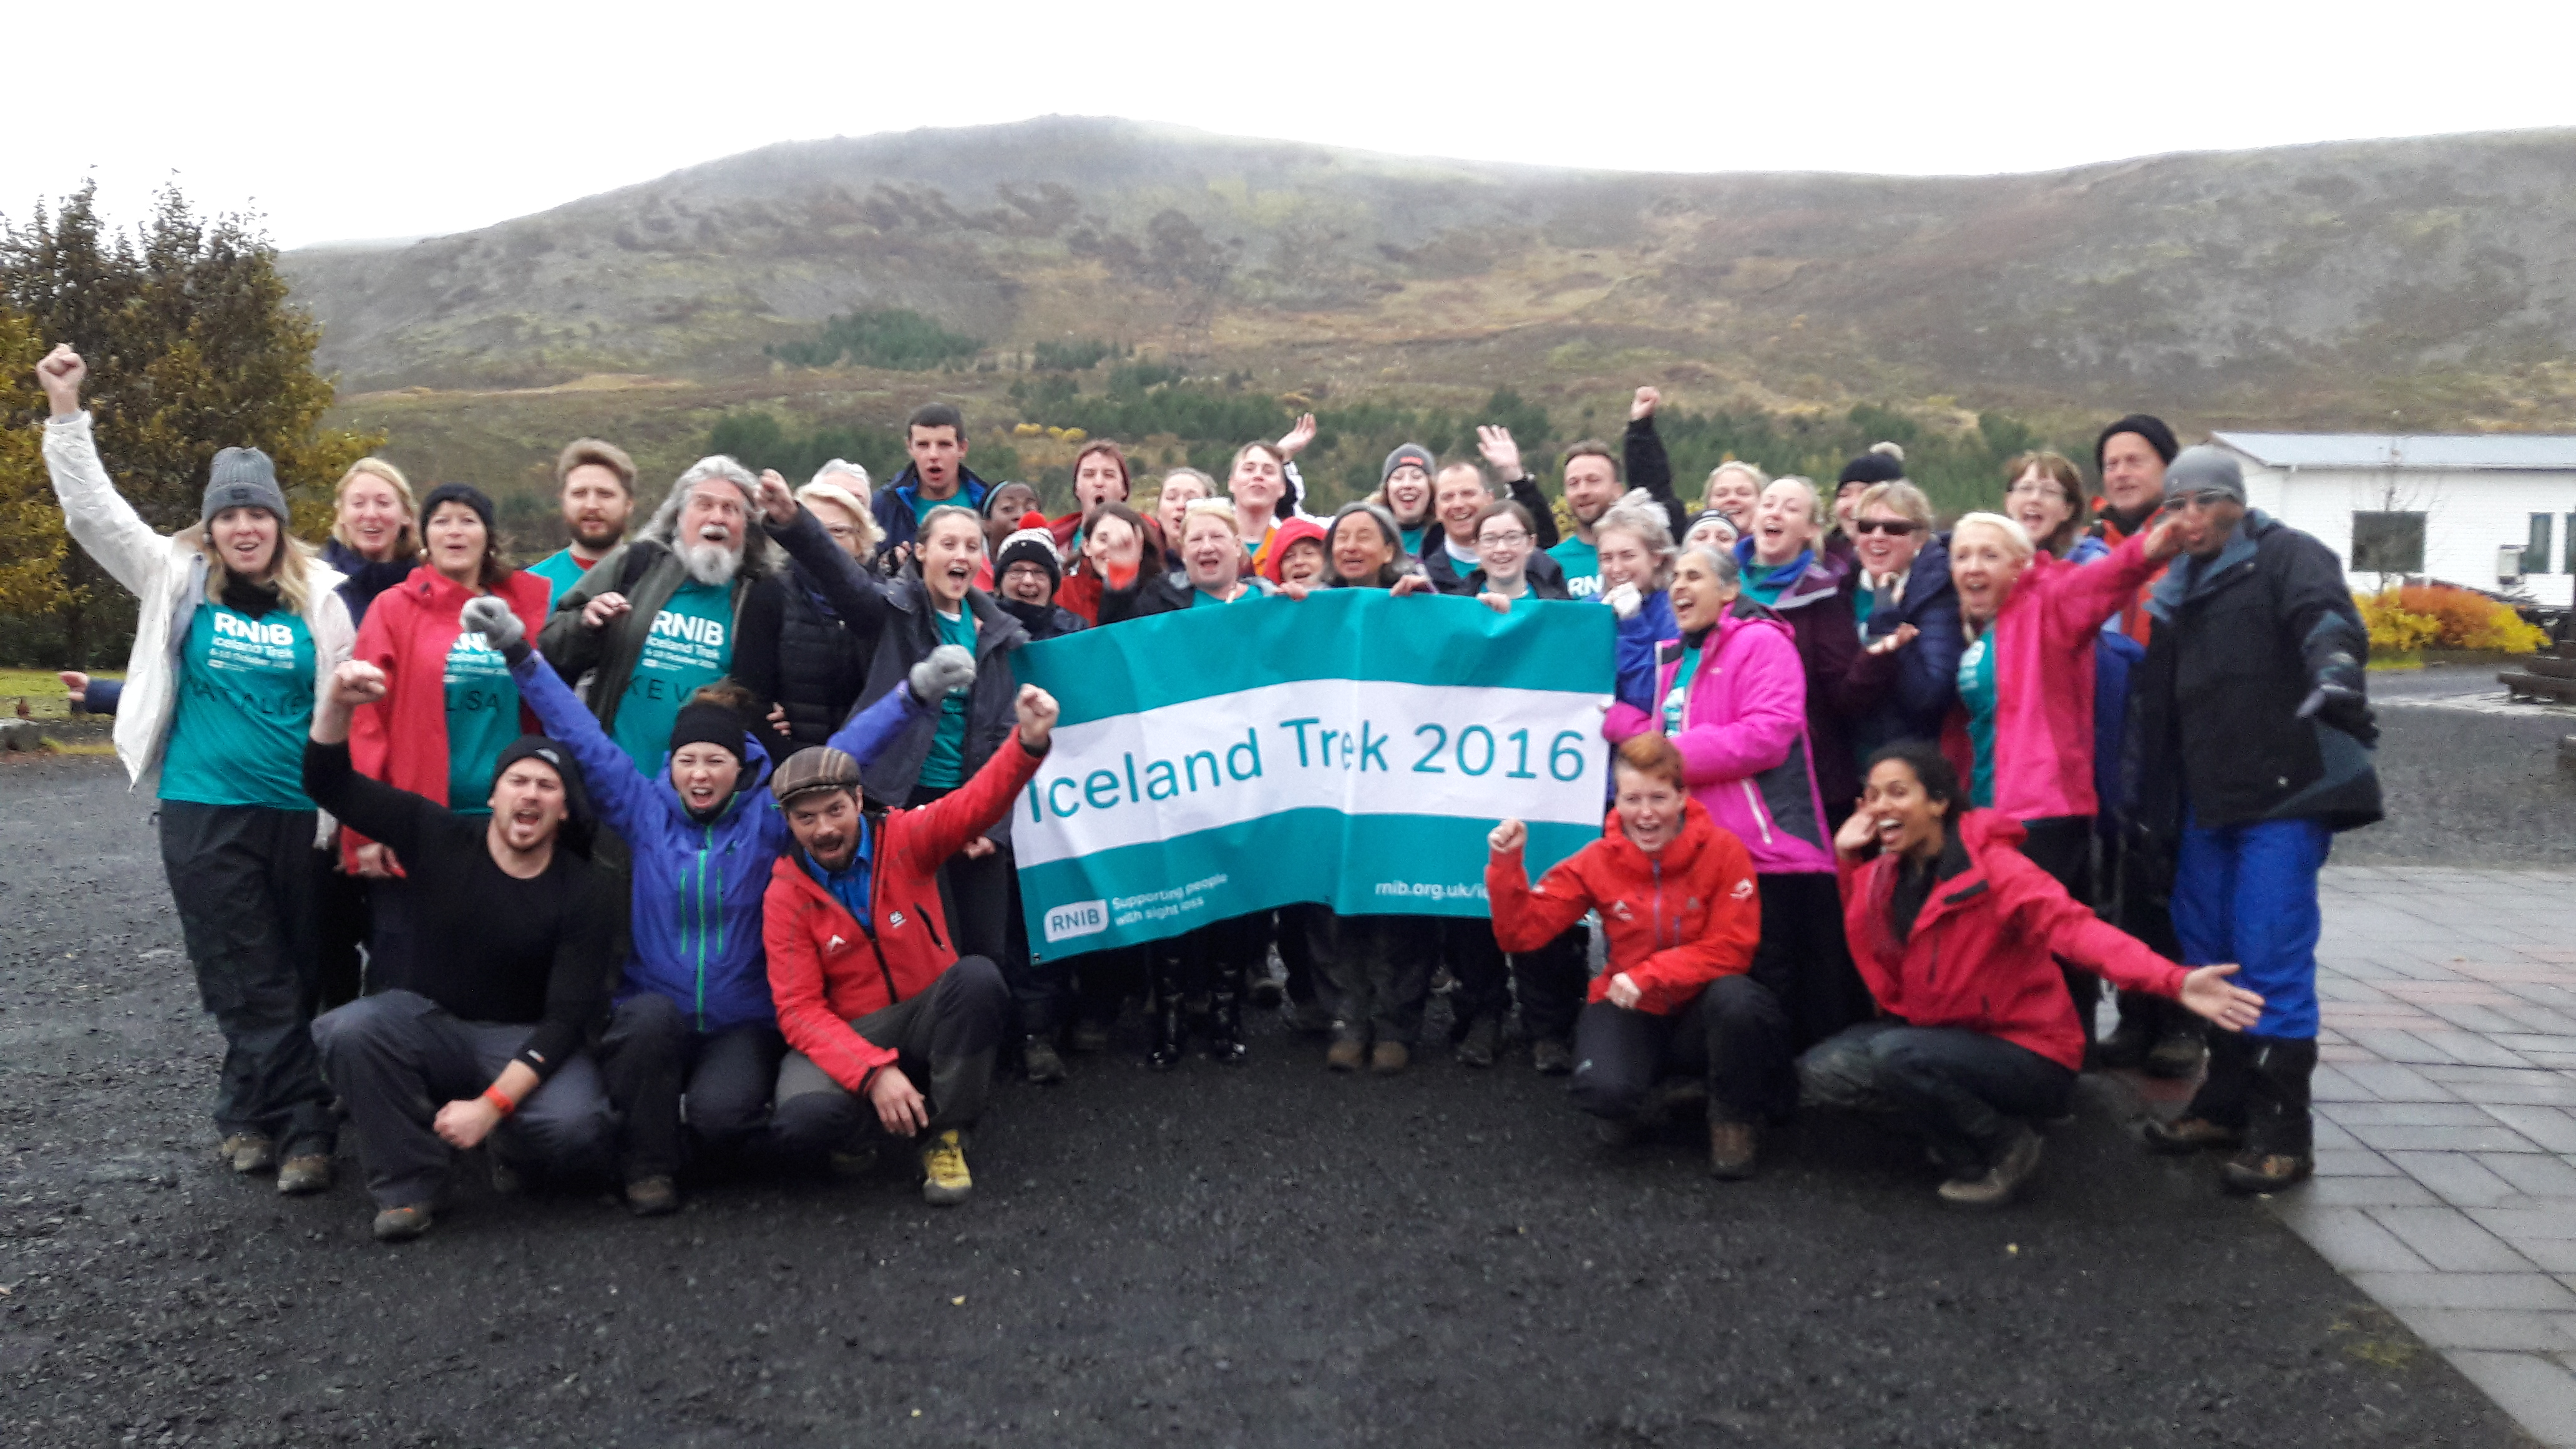 Blind senior RNIB leaders trek across Iceland to support people living with sight loss